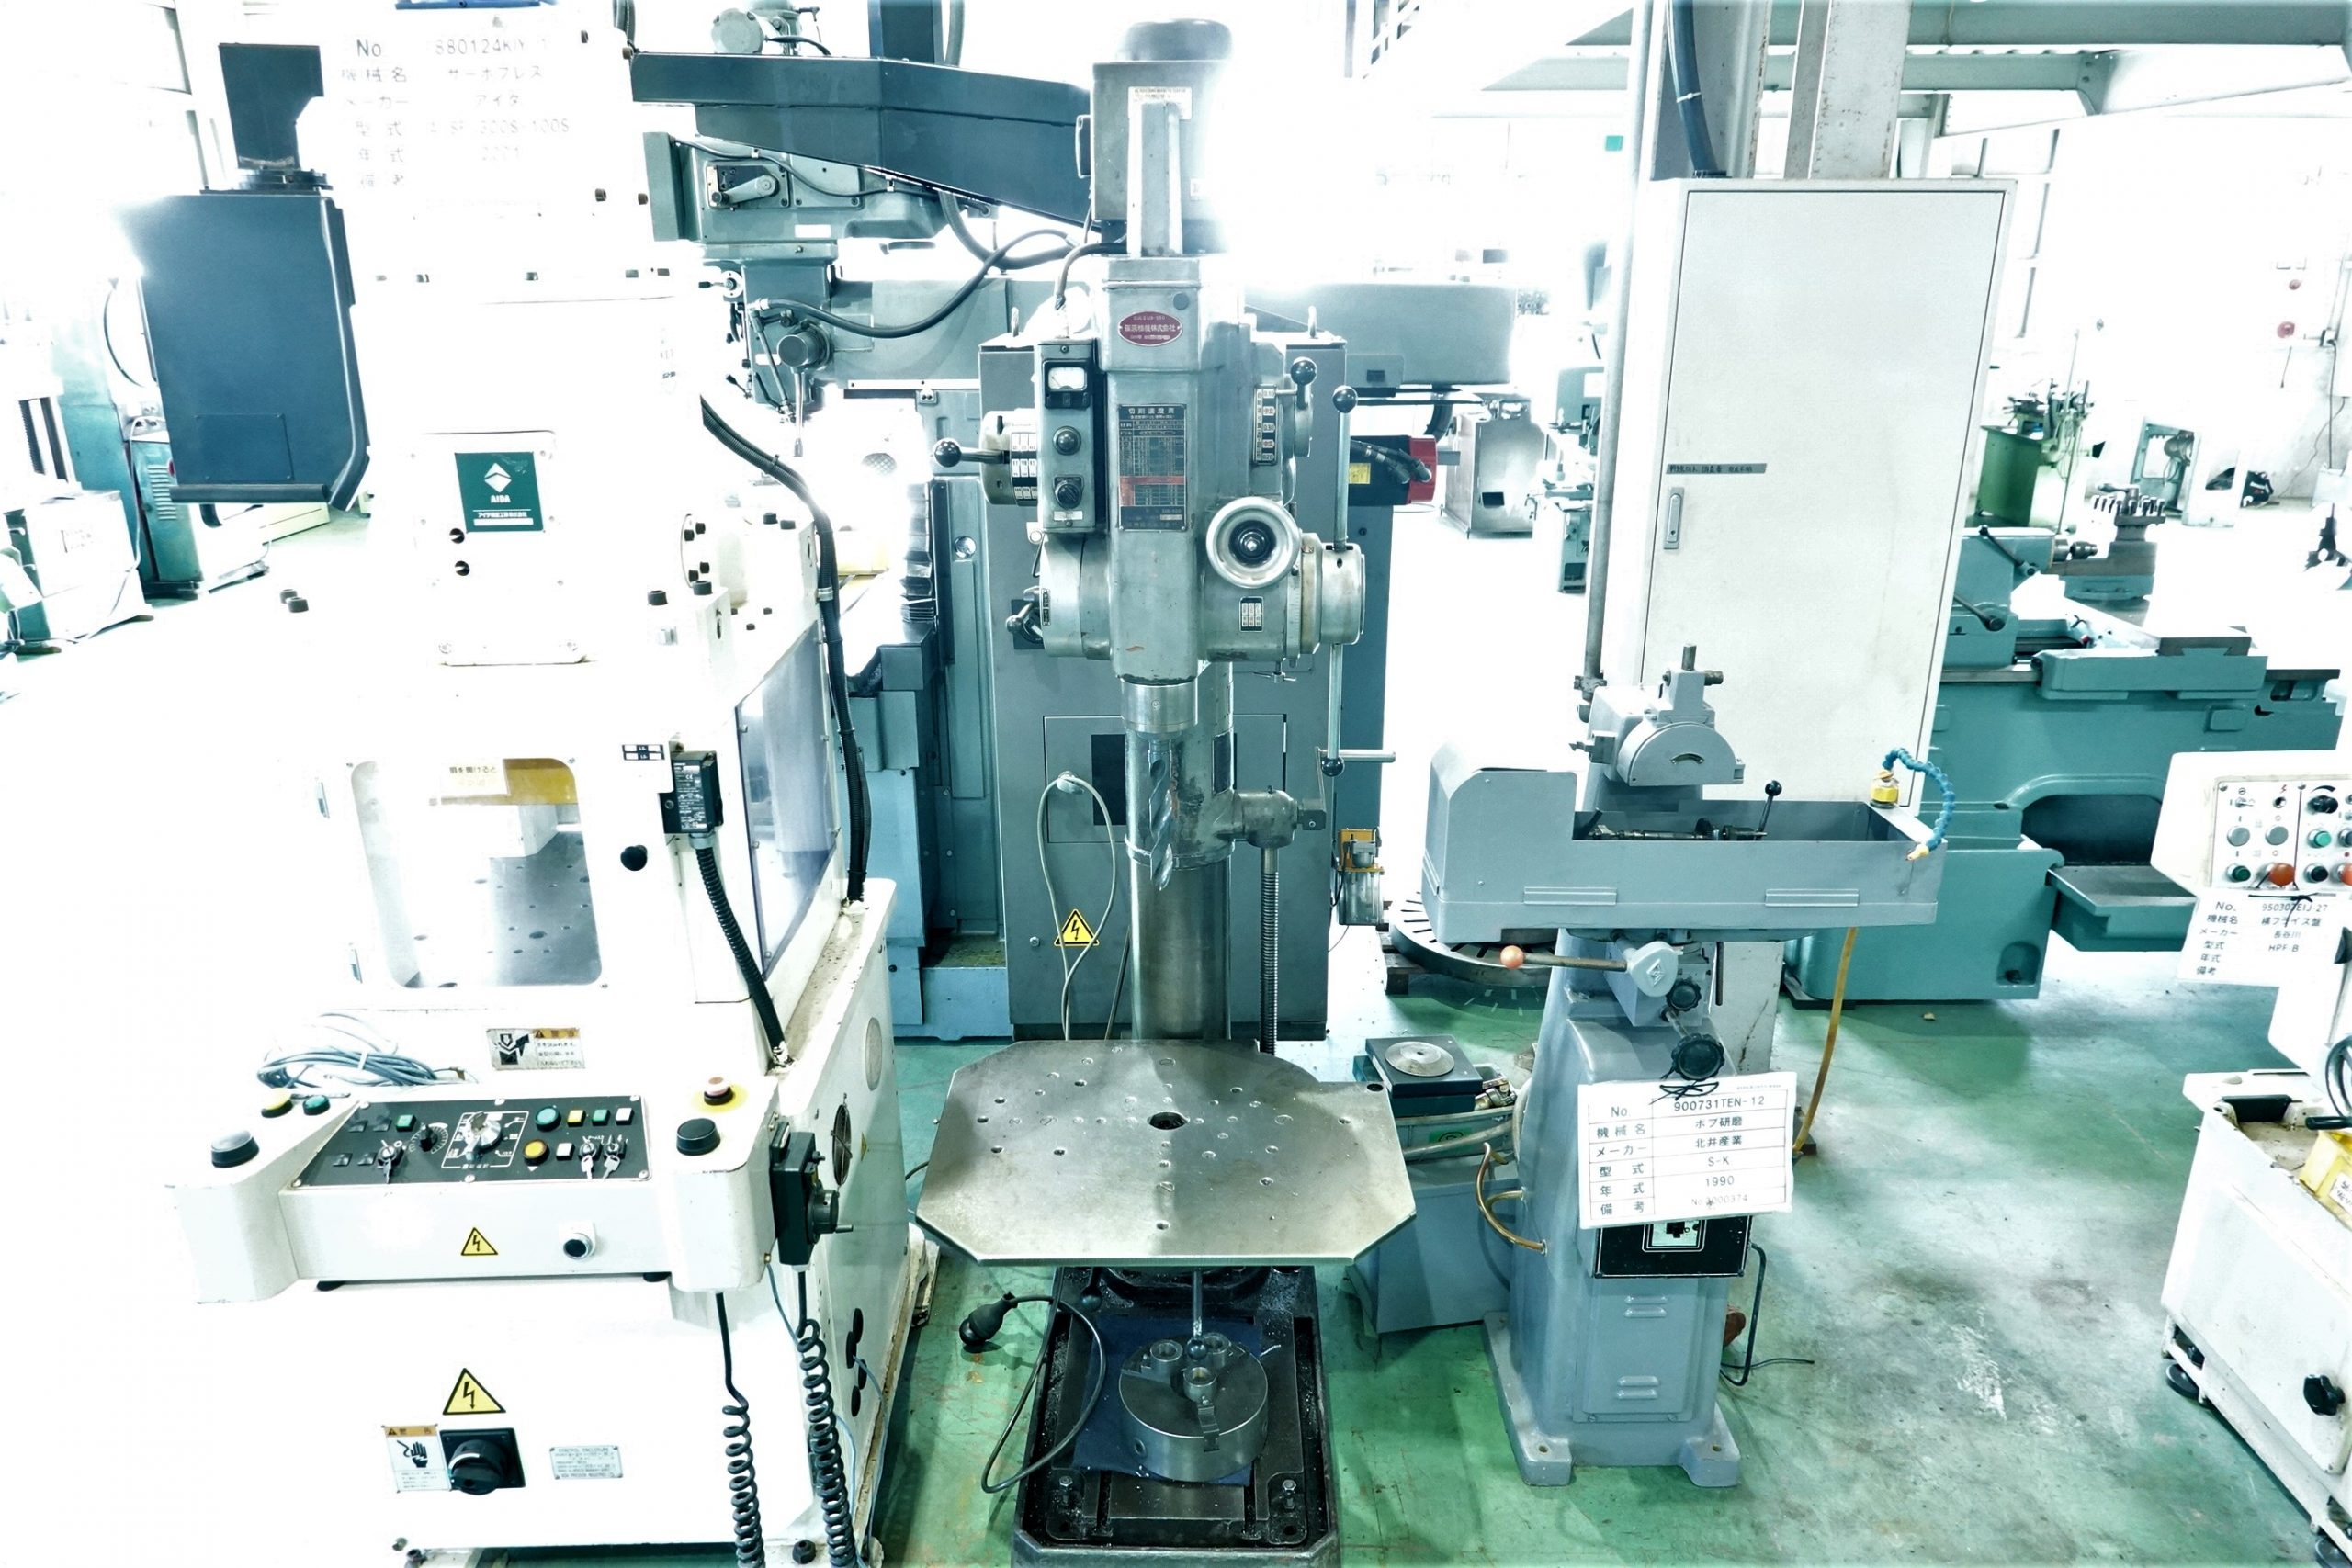 Upright Drill  SHINOHARA  SUD-550の画像